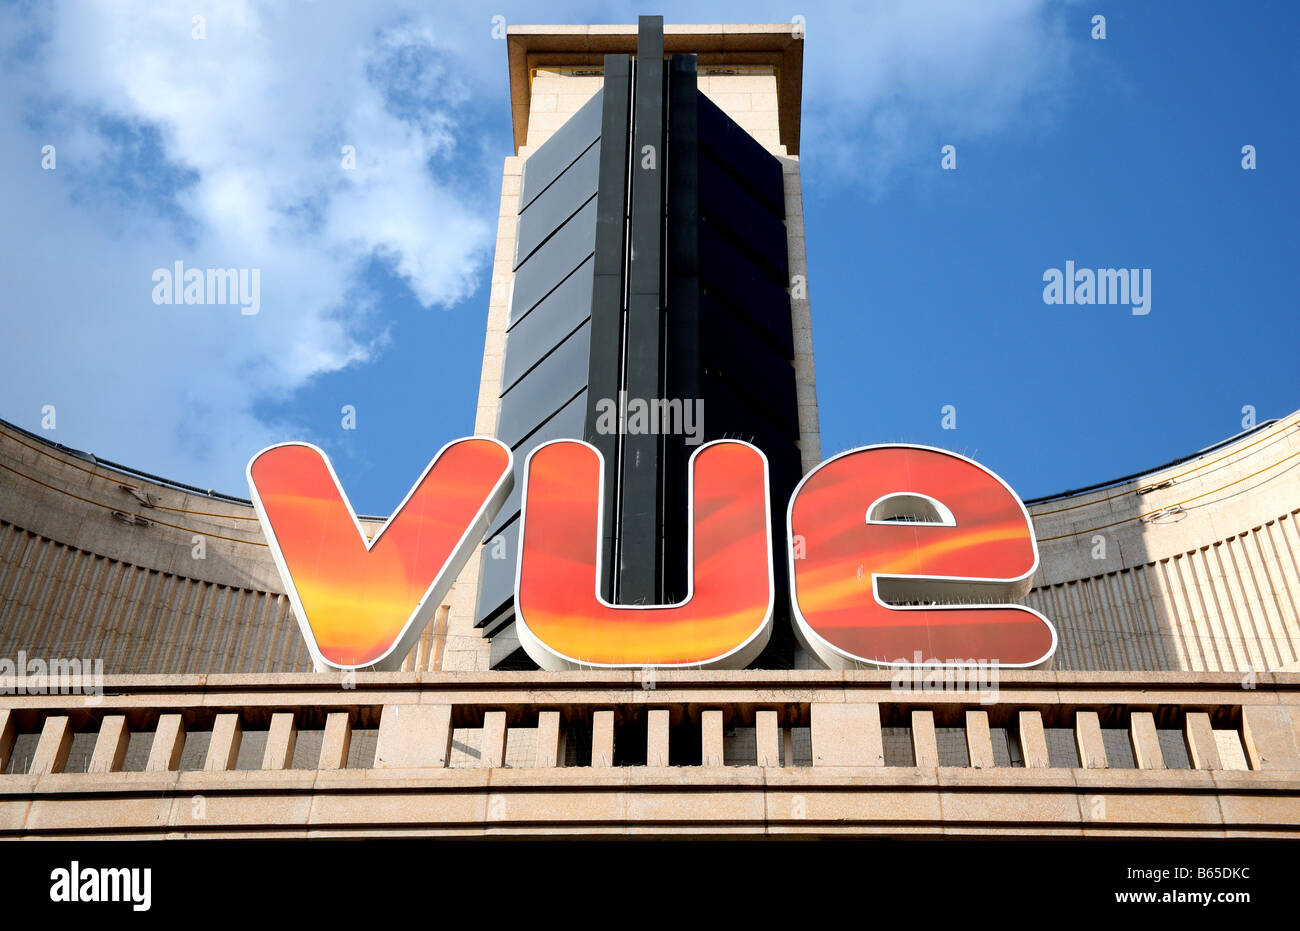 Vue Cinema in London's Leicester Square - Stock Image